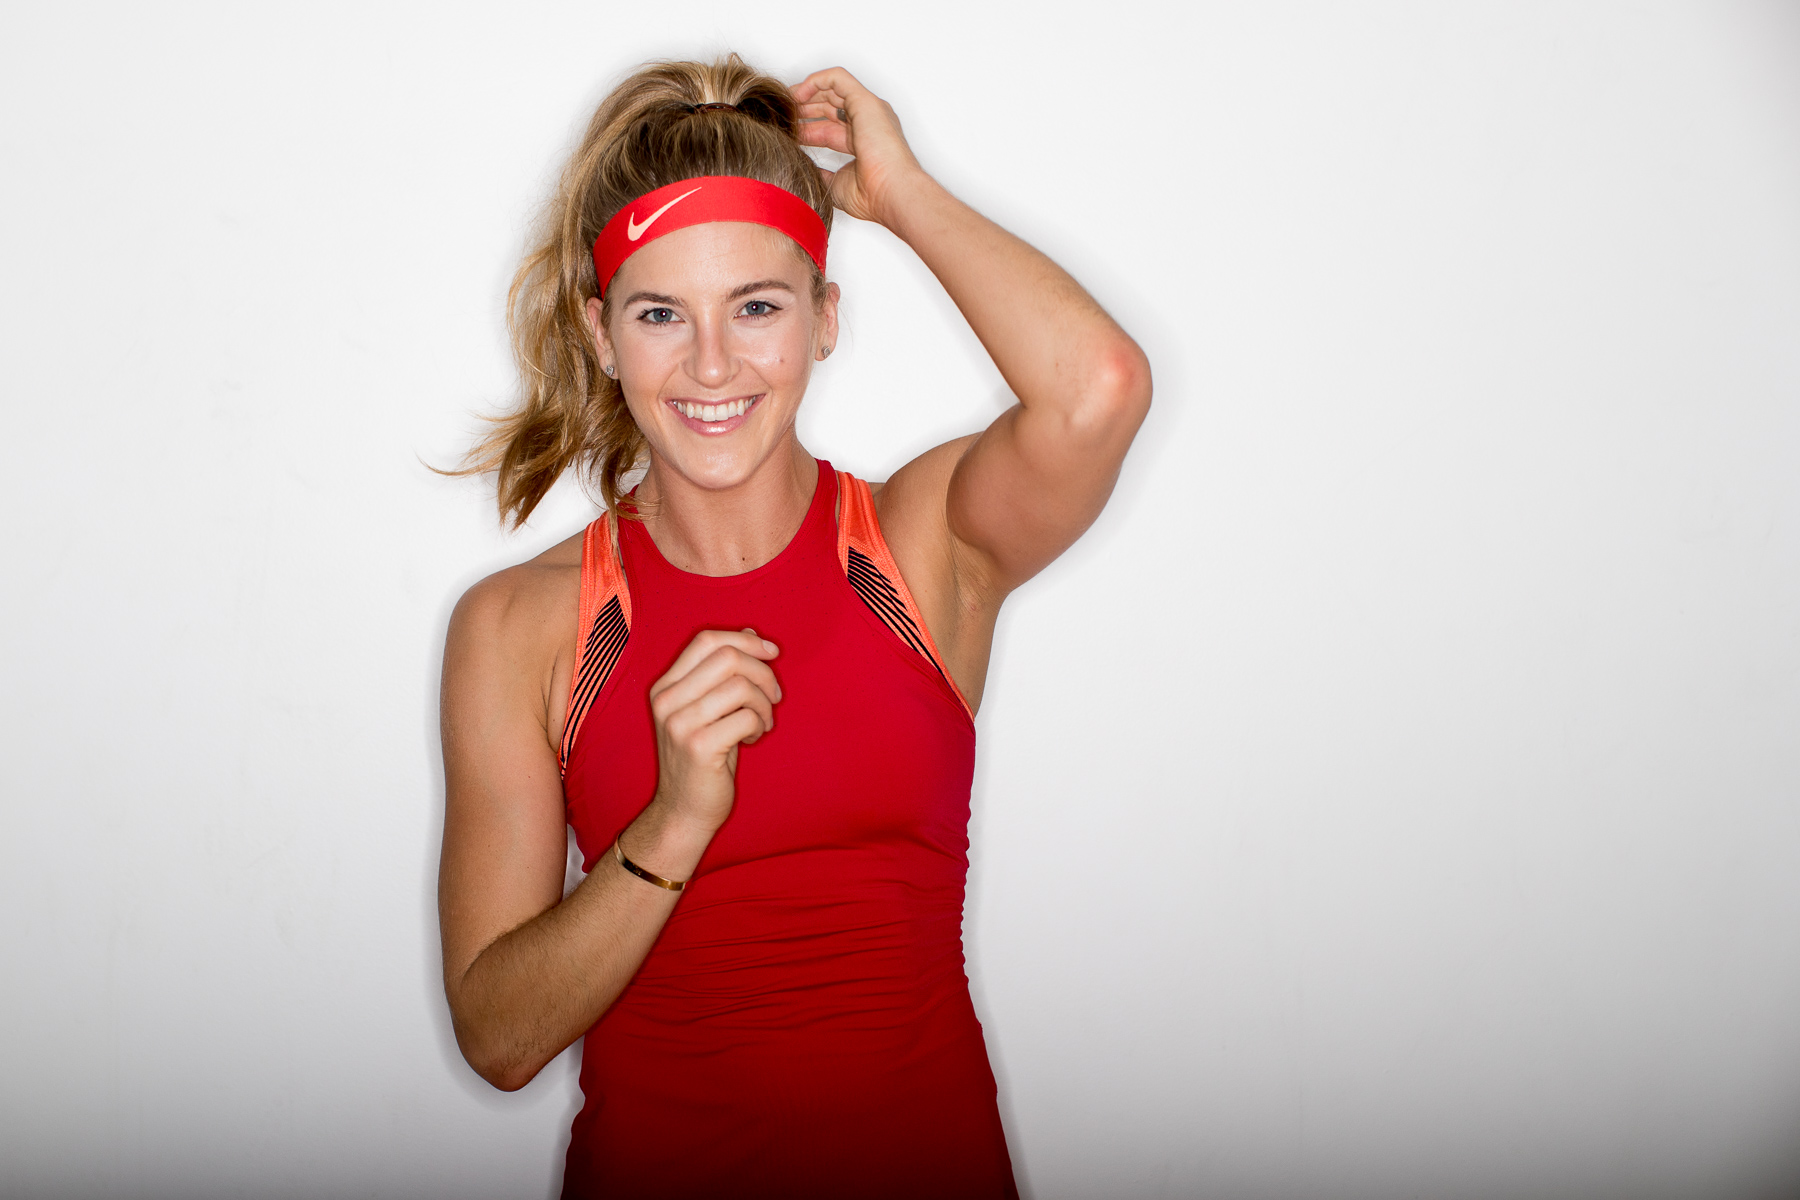 Ashley Barker Photographer Ring Flash Nike Blonde Smiling Tank Top Trainer Model Red